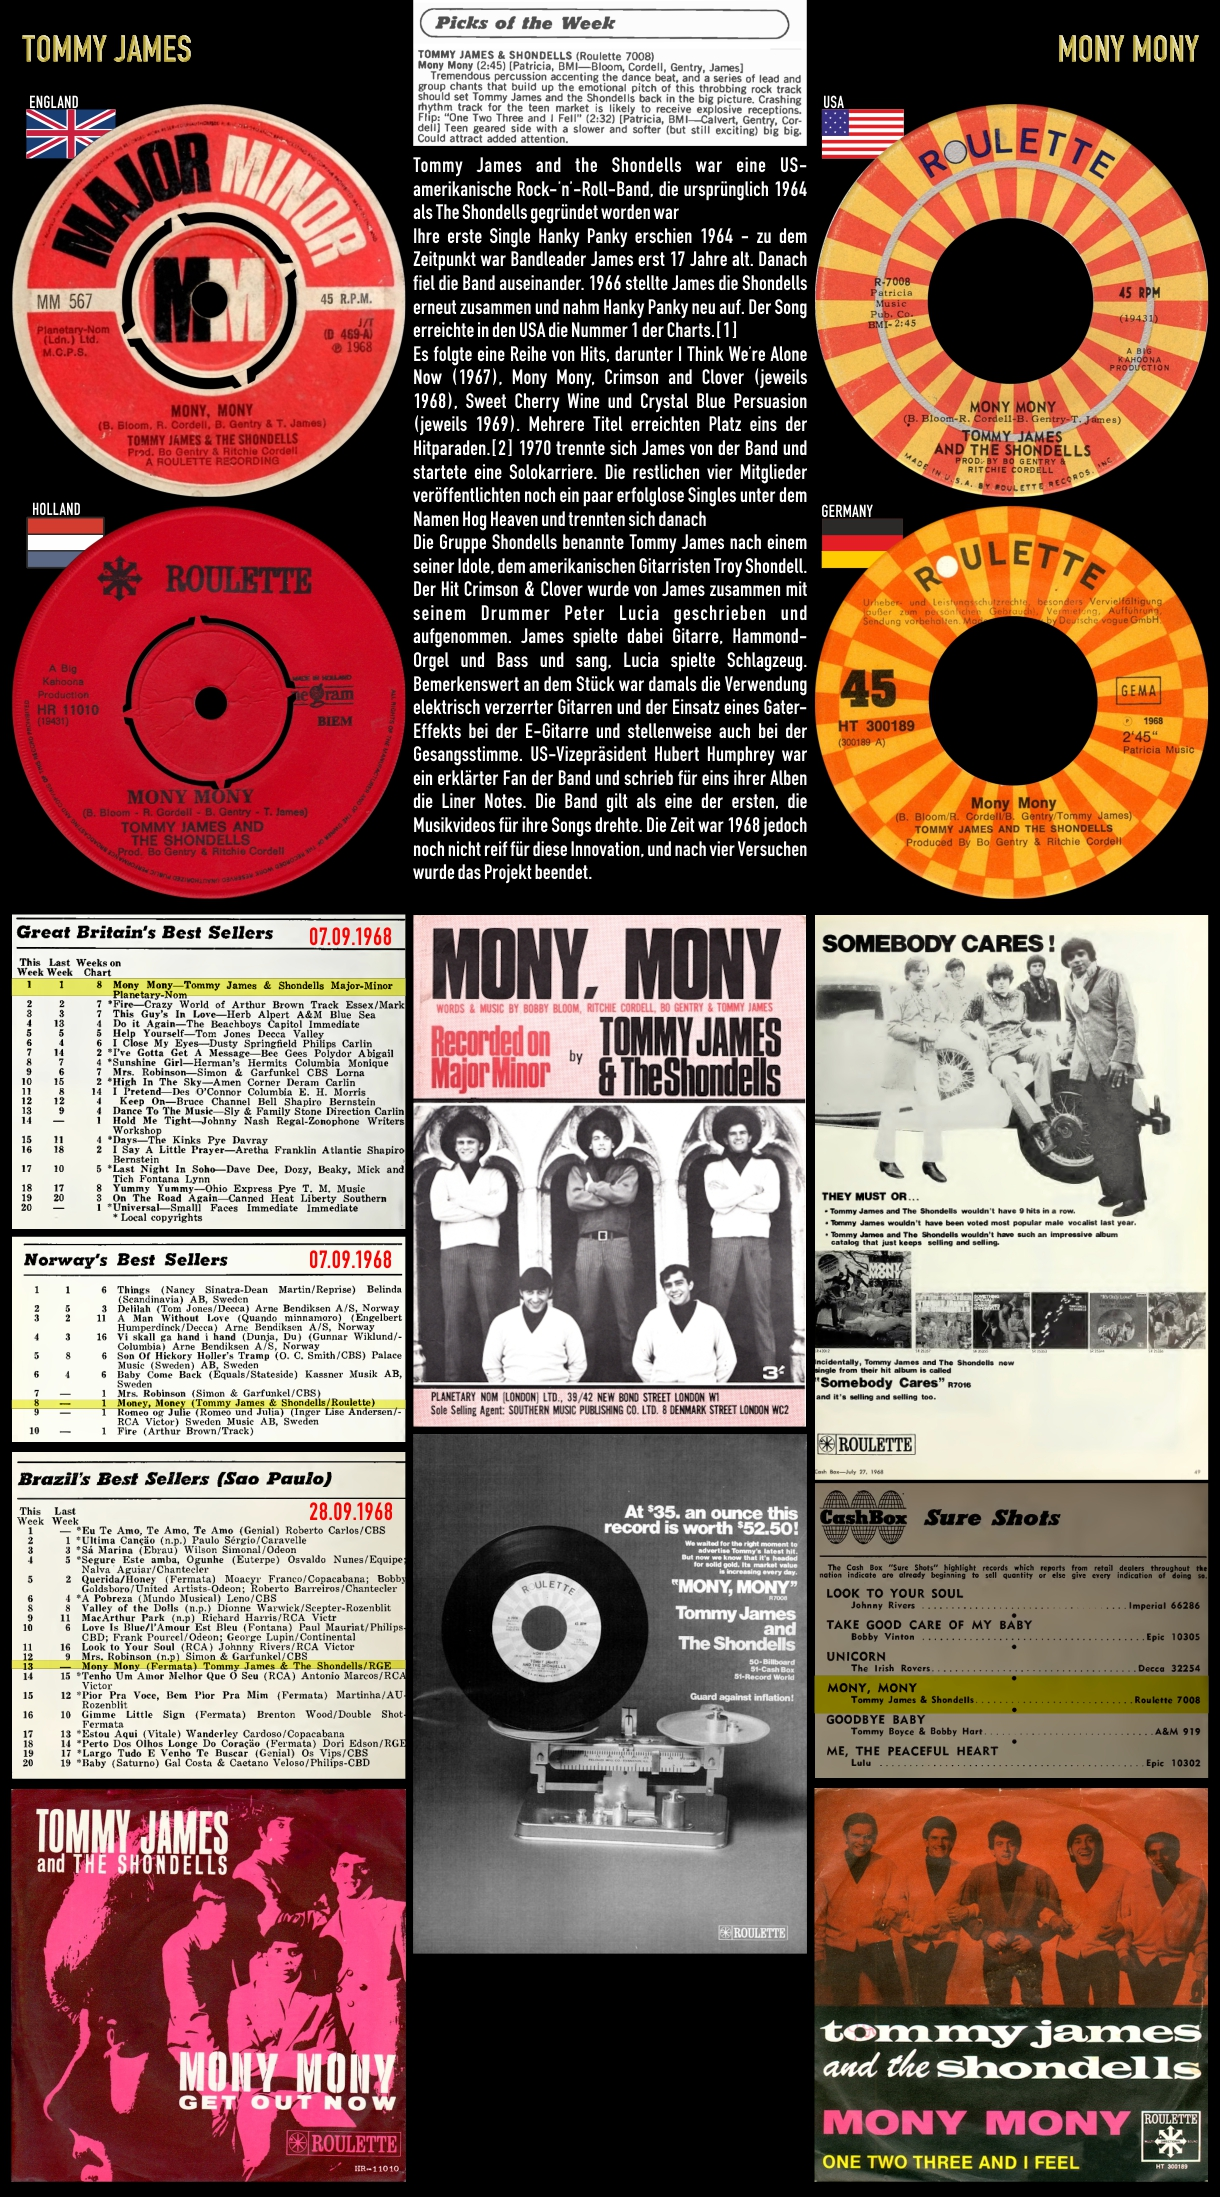 680713_Tommy James_Mony Mony